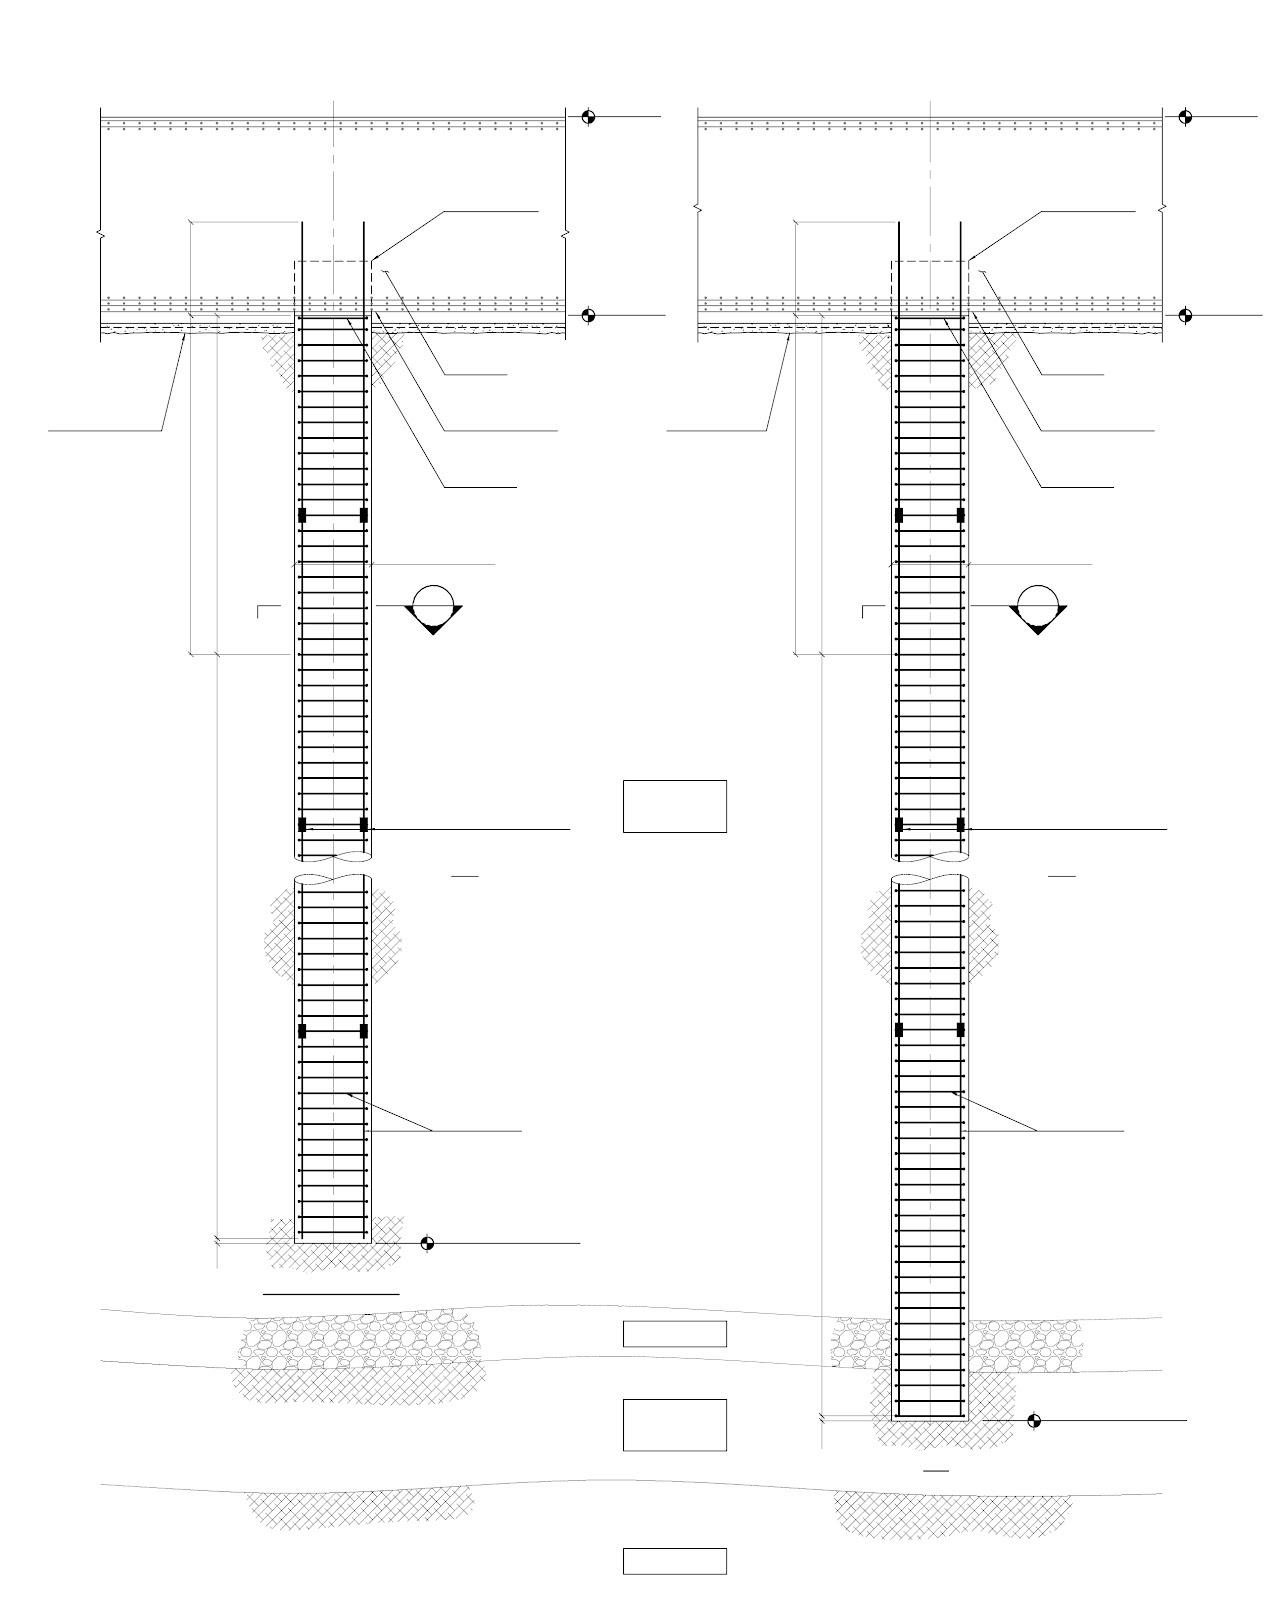 Modern cabinet kingdom tower plans test pile blueprints for Piling foundation house plans